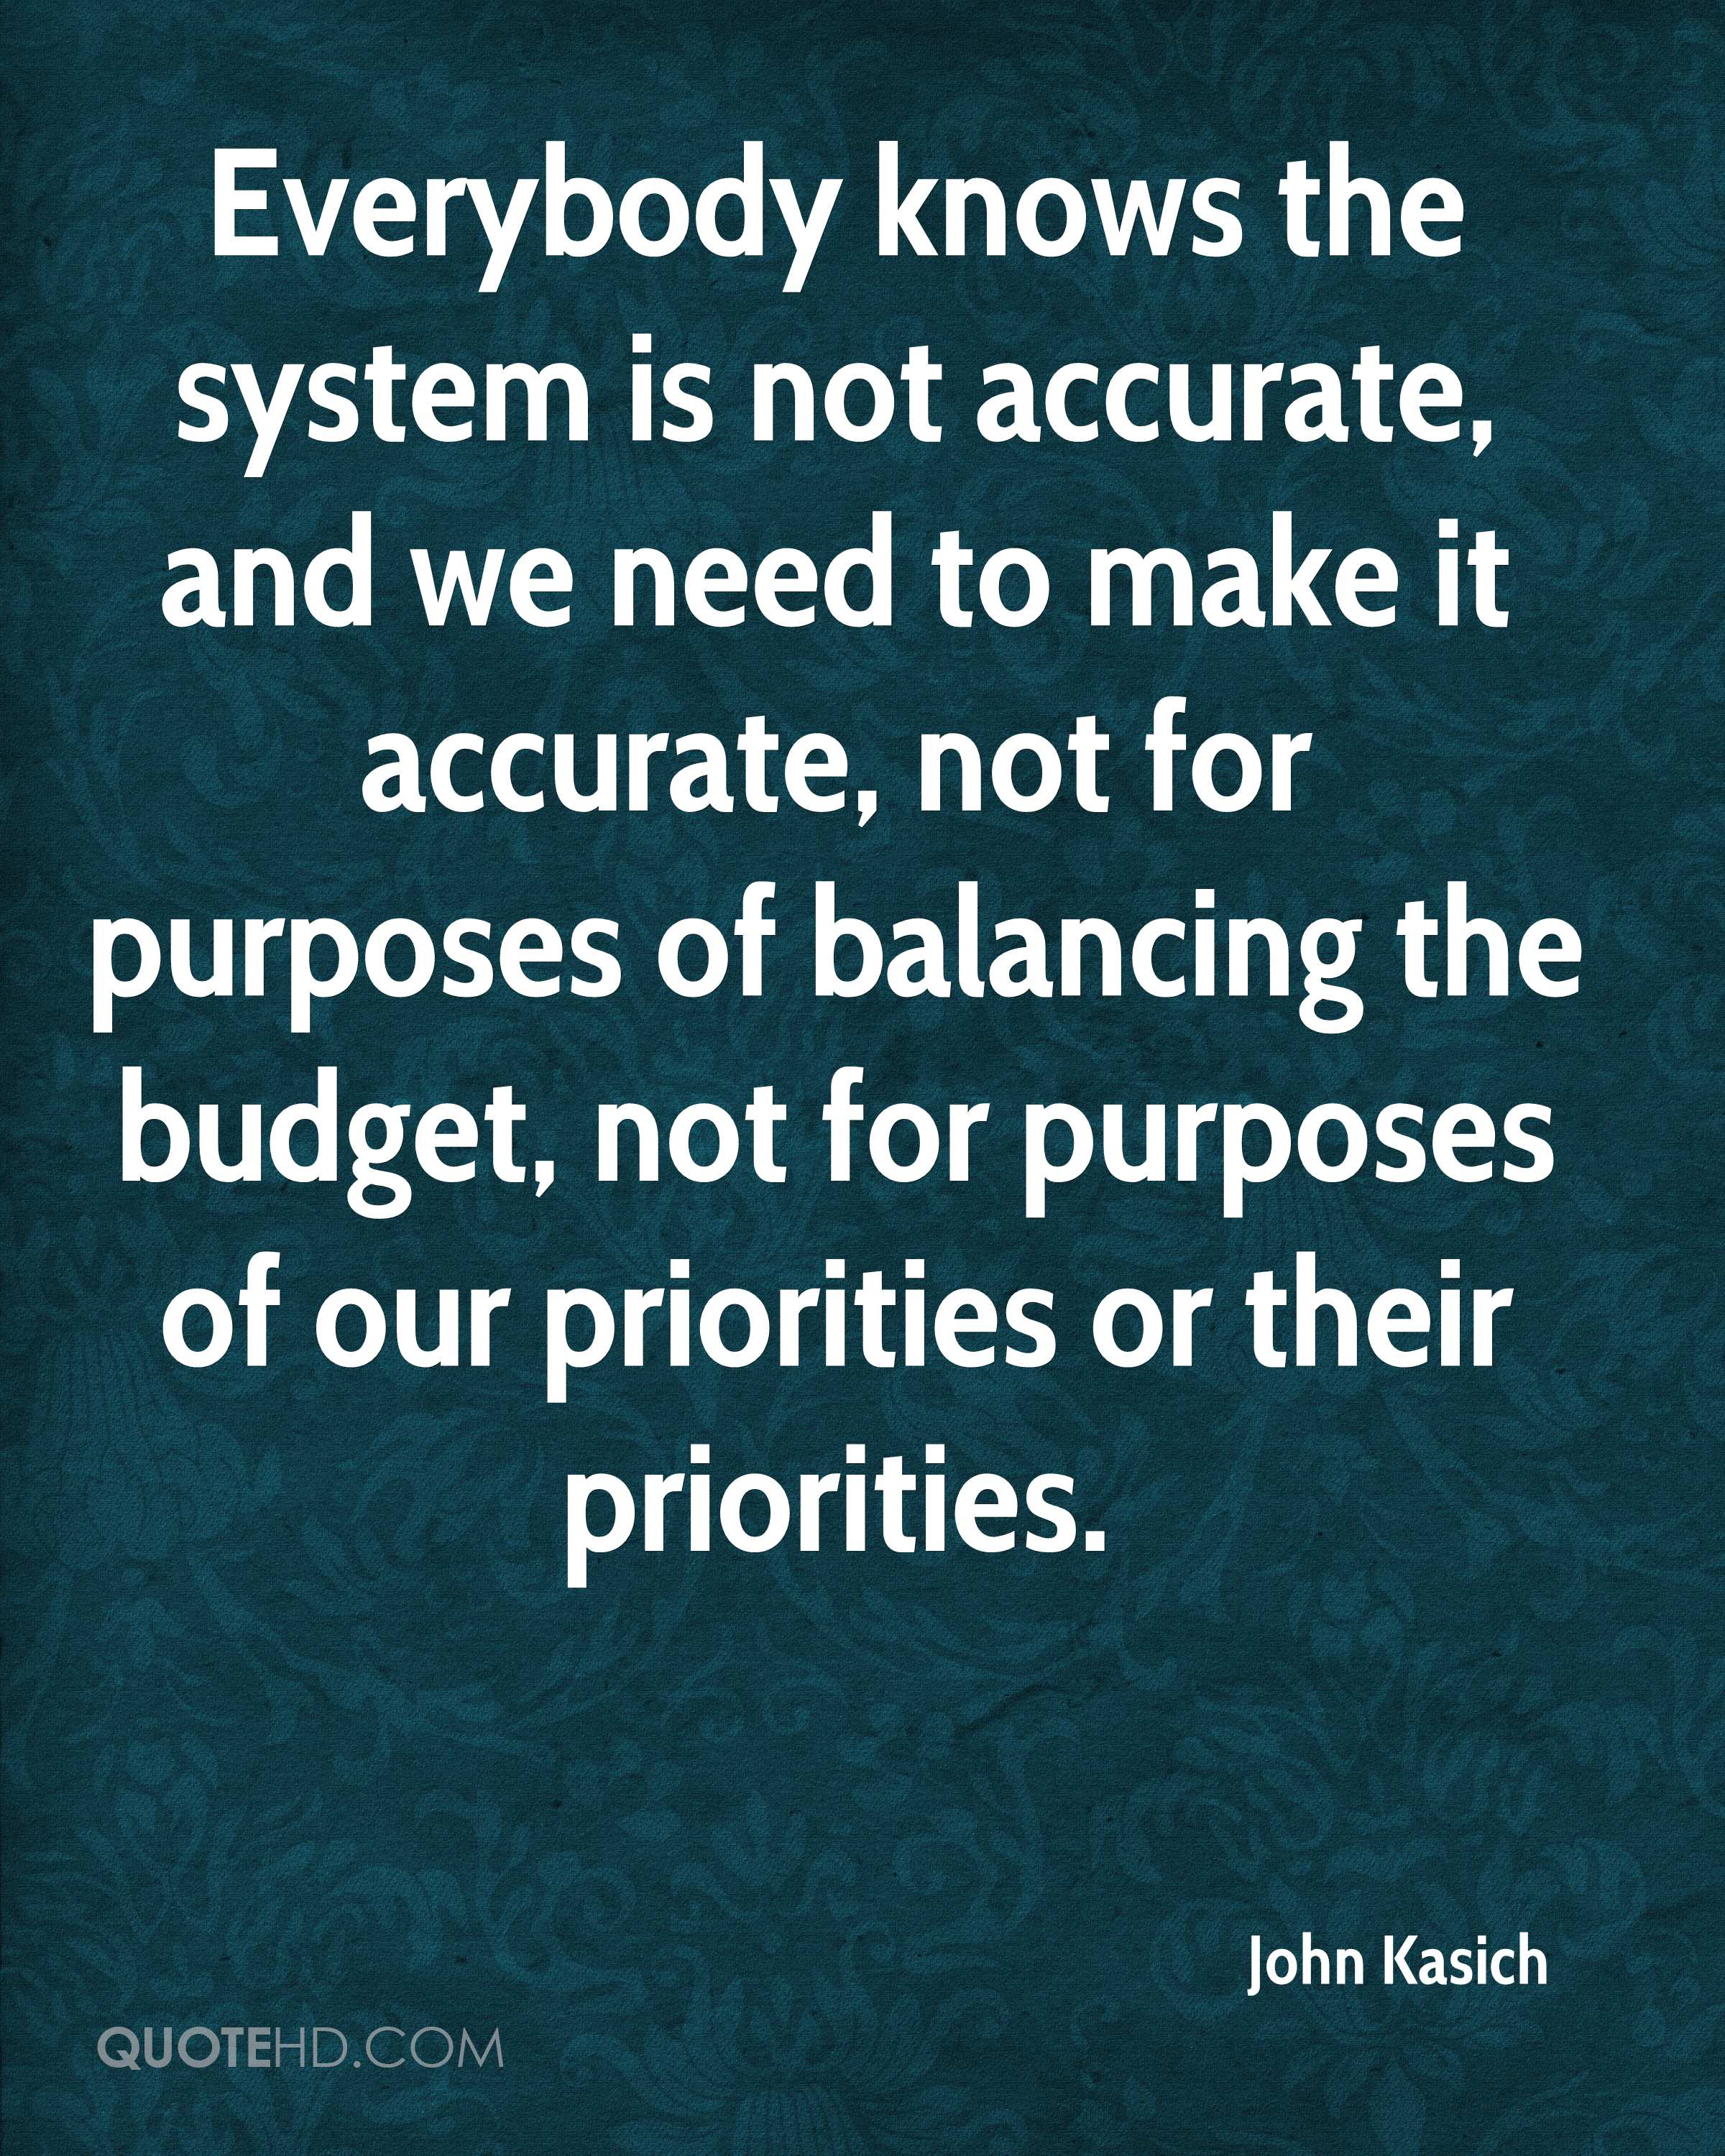 Everybody knows the system is not accurate, and we need to make it accurate, not for purposes of balancing the budget, not for purposes of our priorities or their priorities.